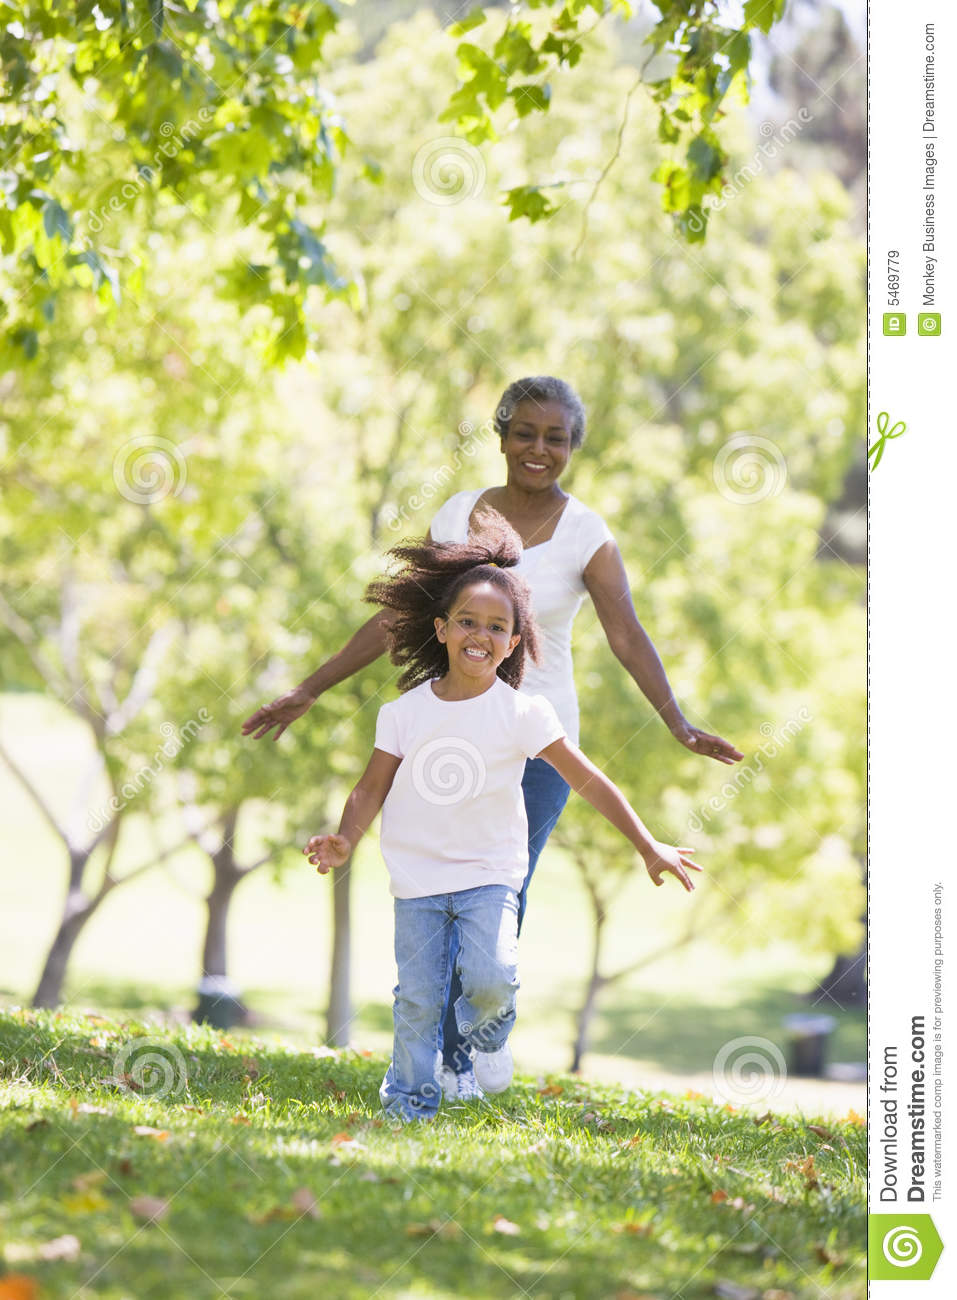 Grandmother and granddaughter running in park and